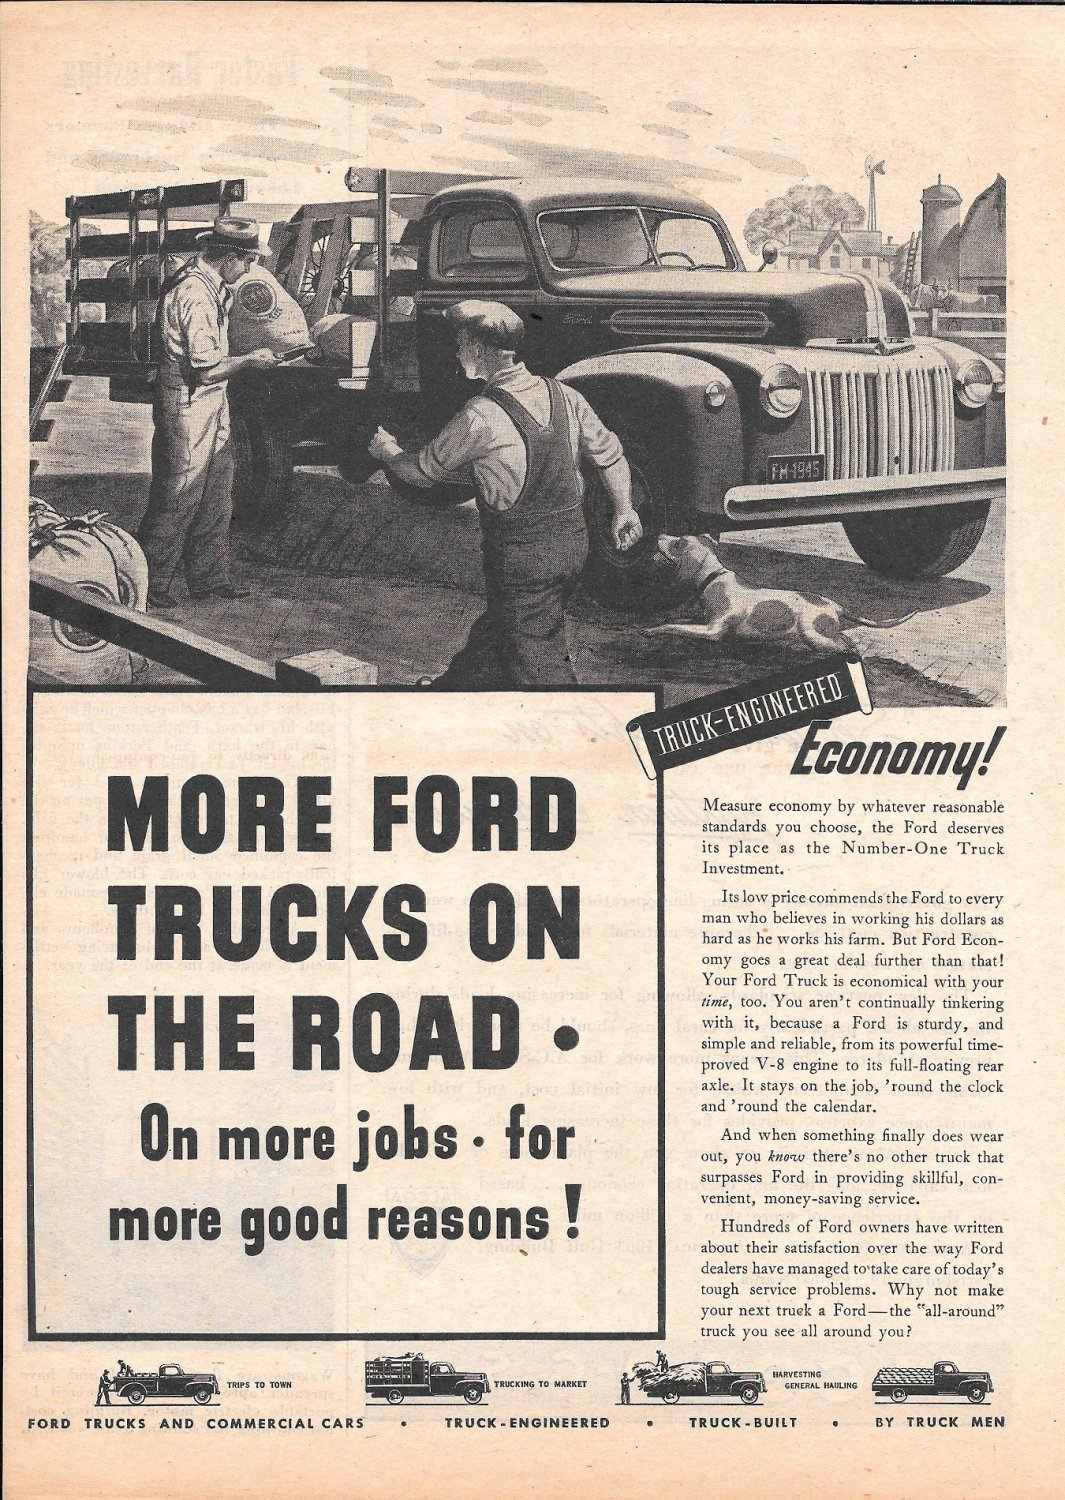 1945 Ford Trucks More On The Road Ad Loading Feed